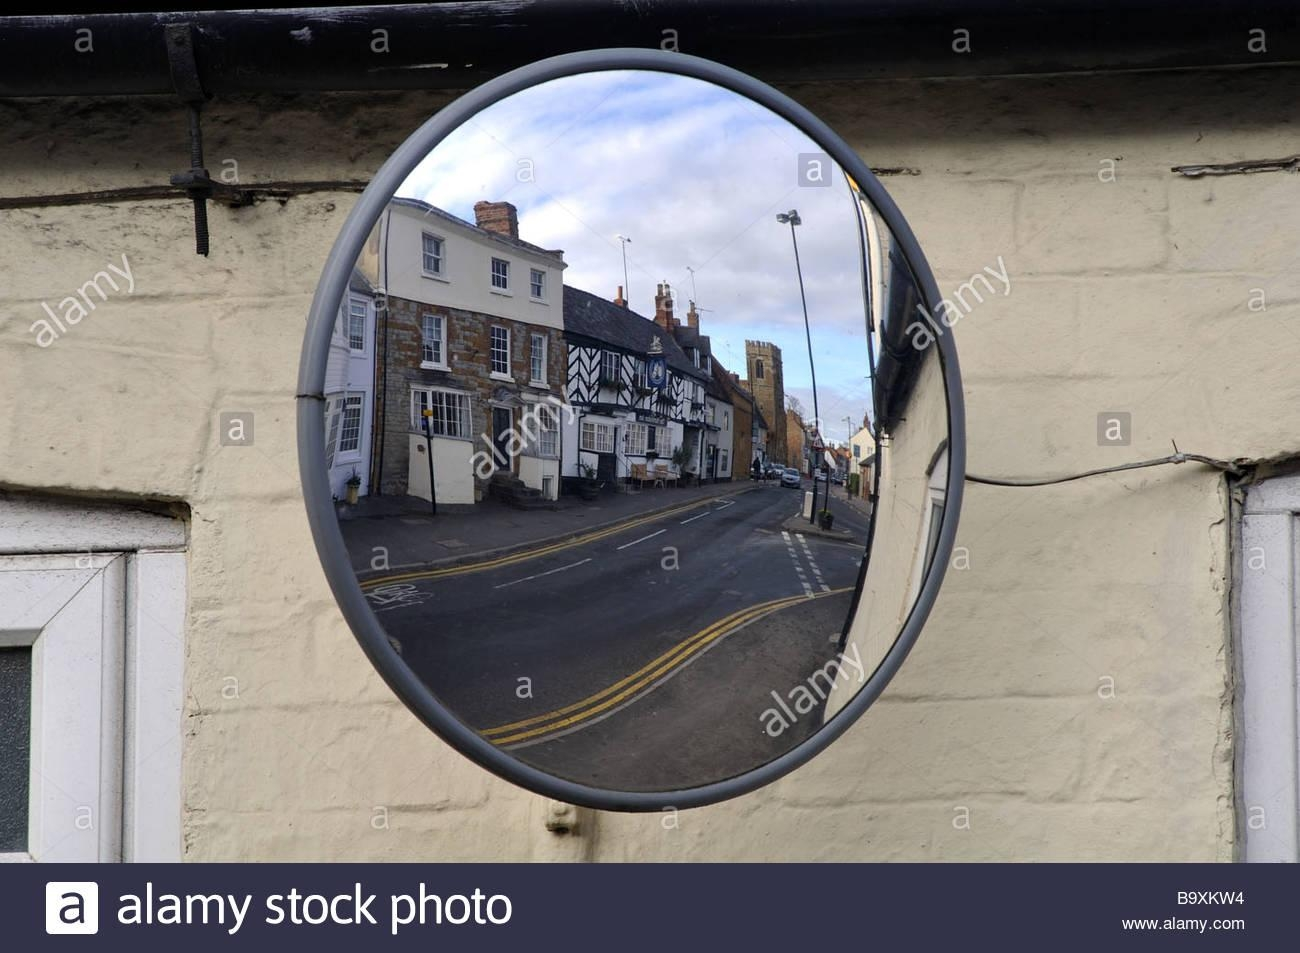 Convex Car Mirror Stock Photos & Convex Car Mirror Stock Images Inside Convex Mirror Buy (Image 5 of 20)